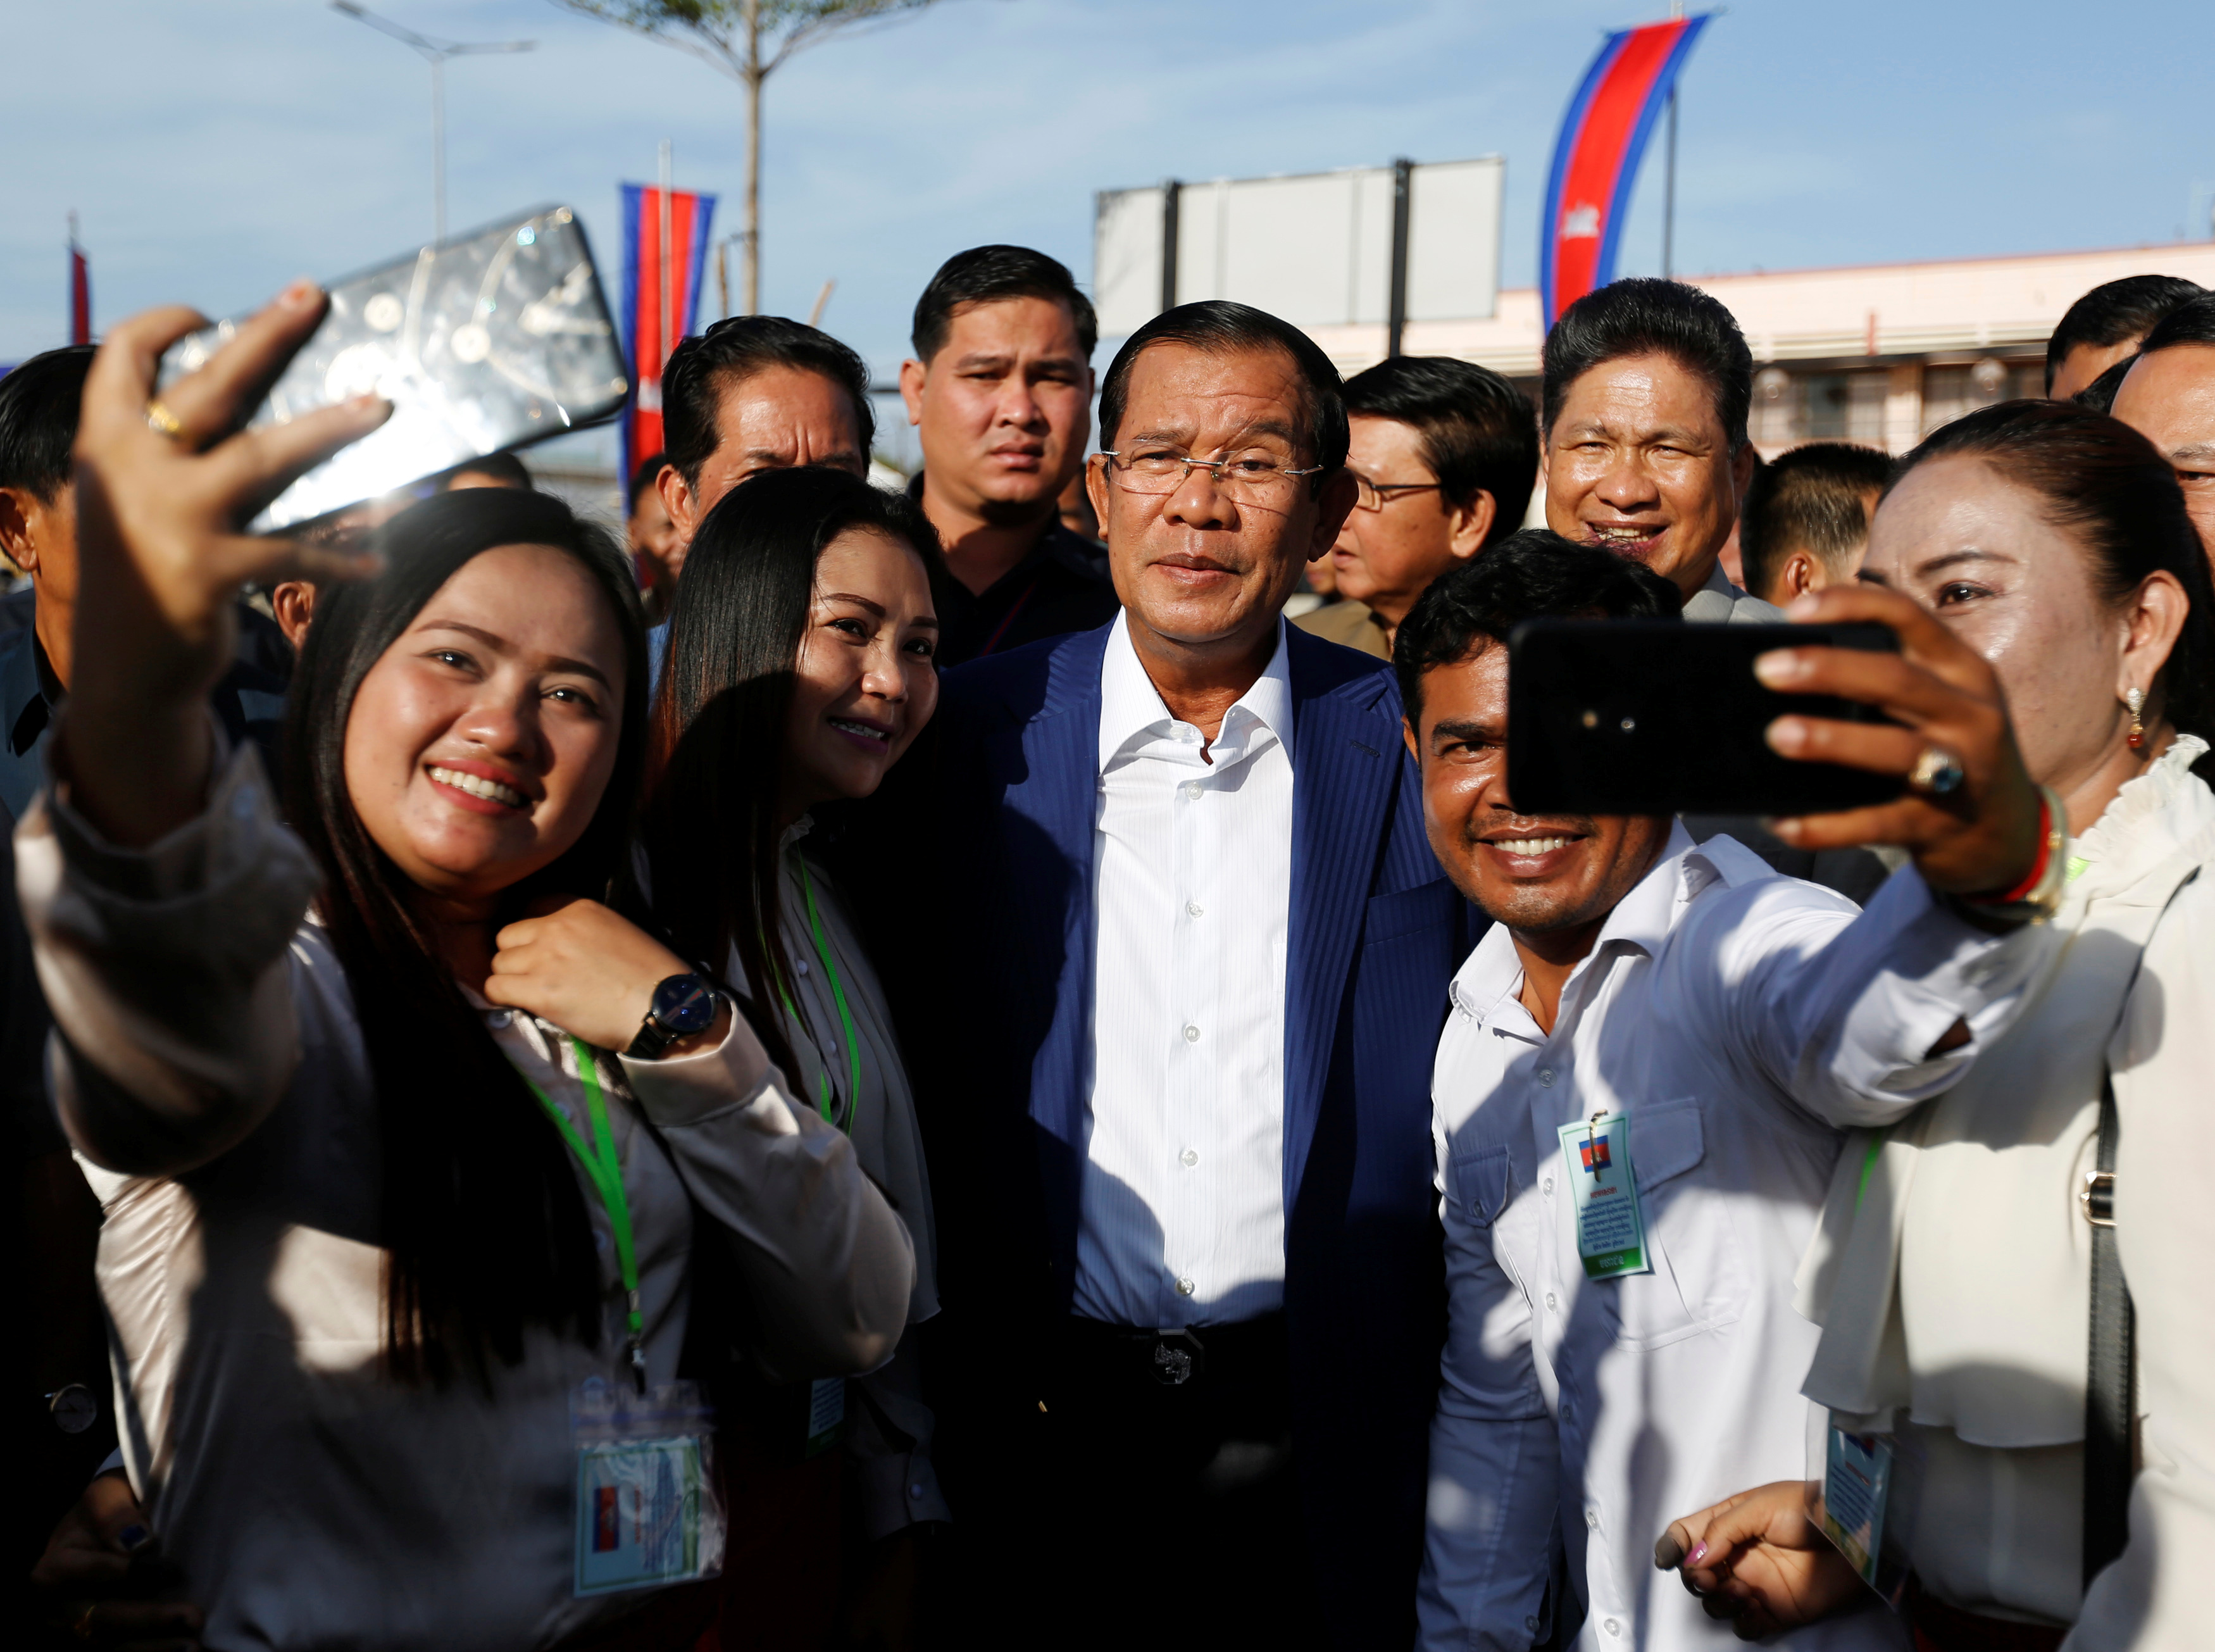 Supporters take pictures with Cambodia's Prime Minister Hun Sen at the inauguration of a new boat terminal in Phnom Penh on Aug. 1, 2018.